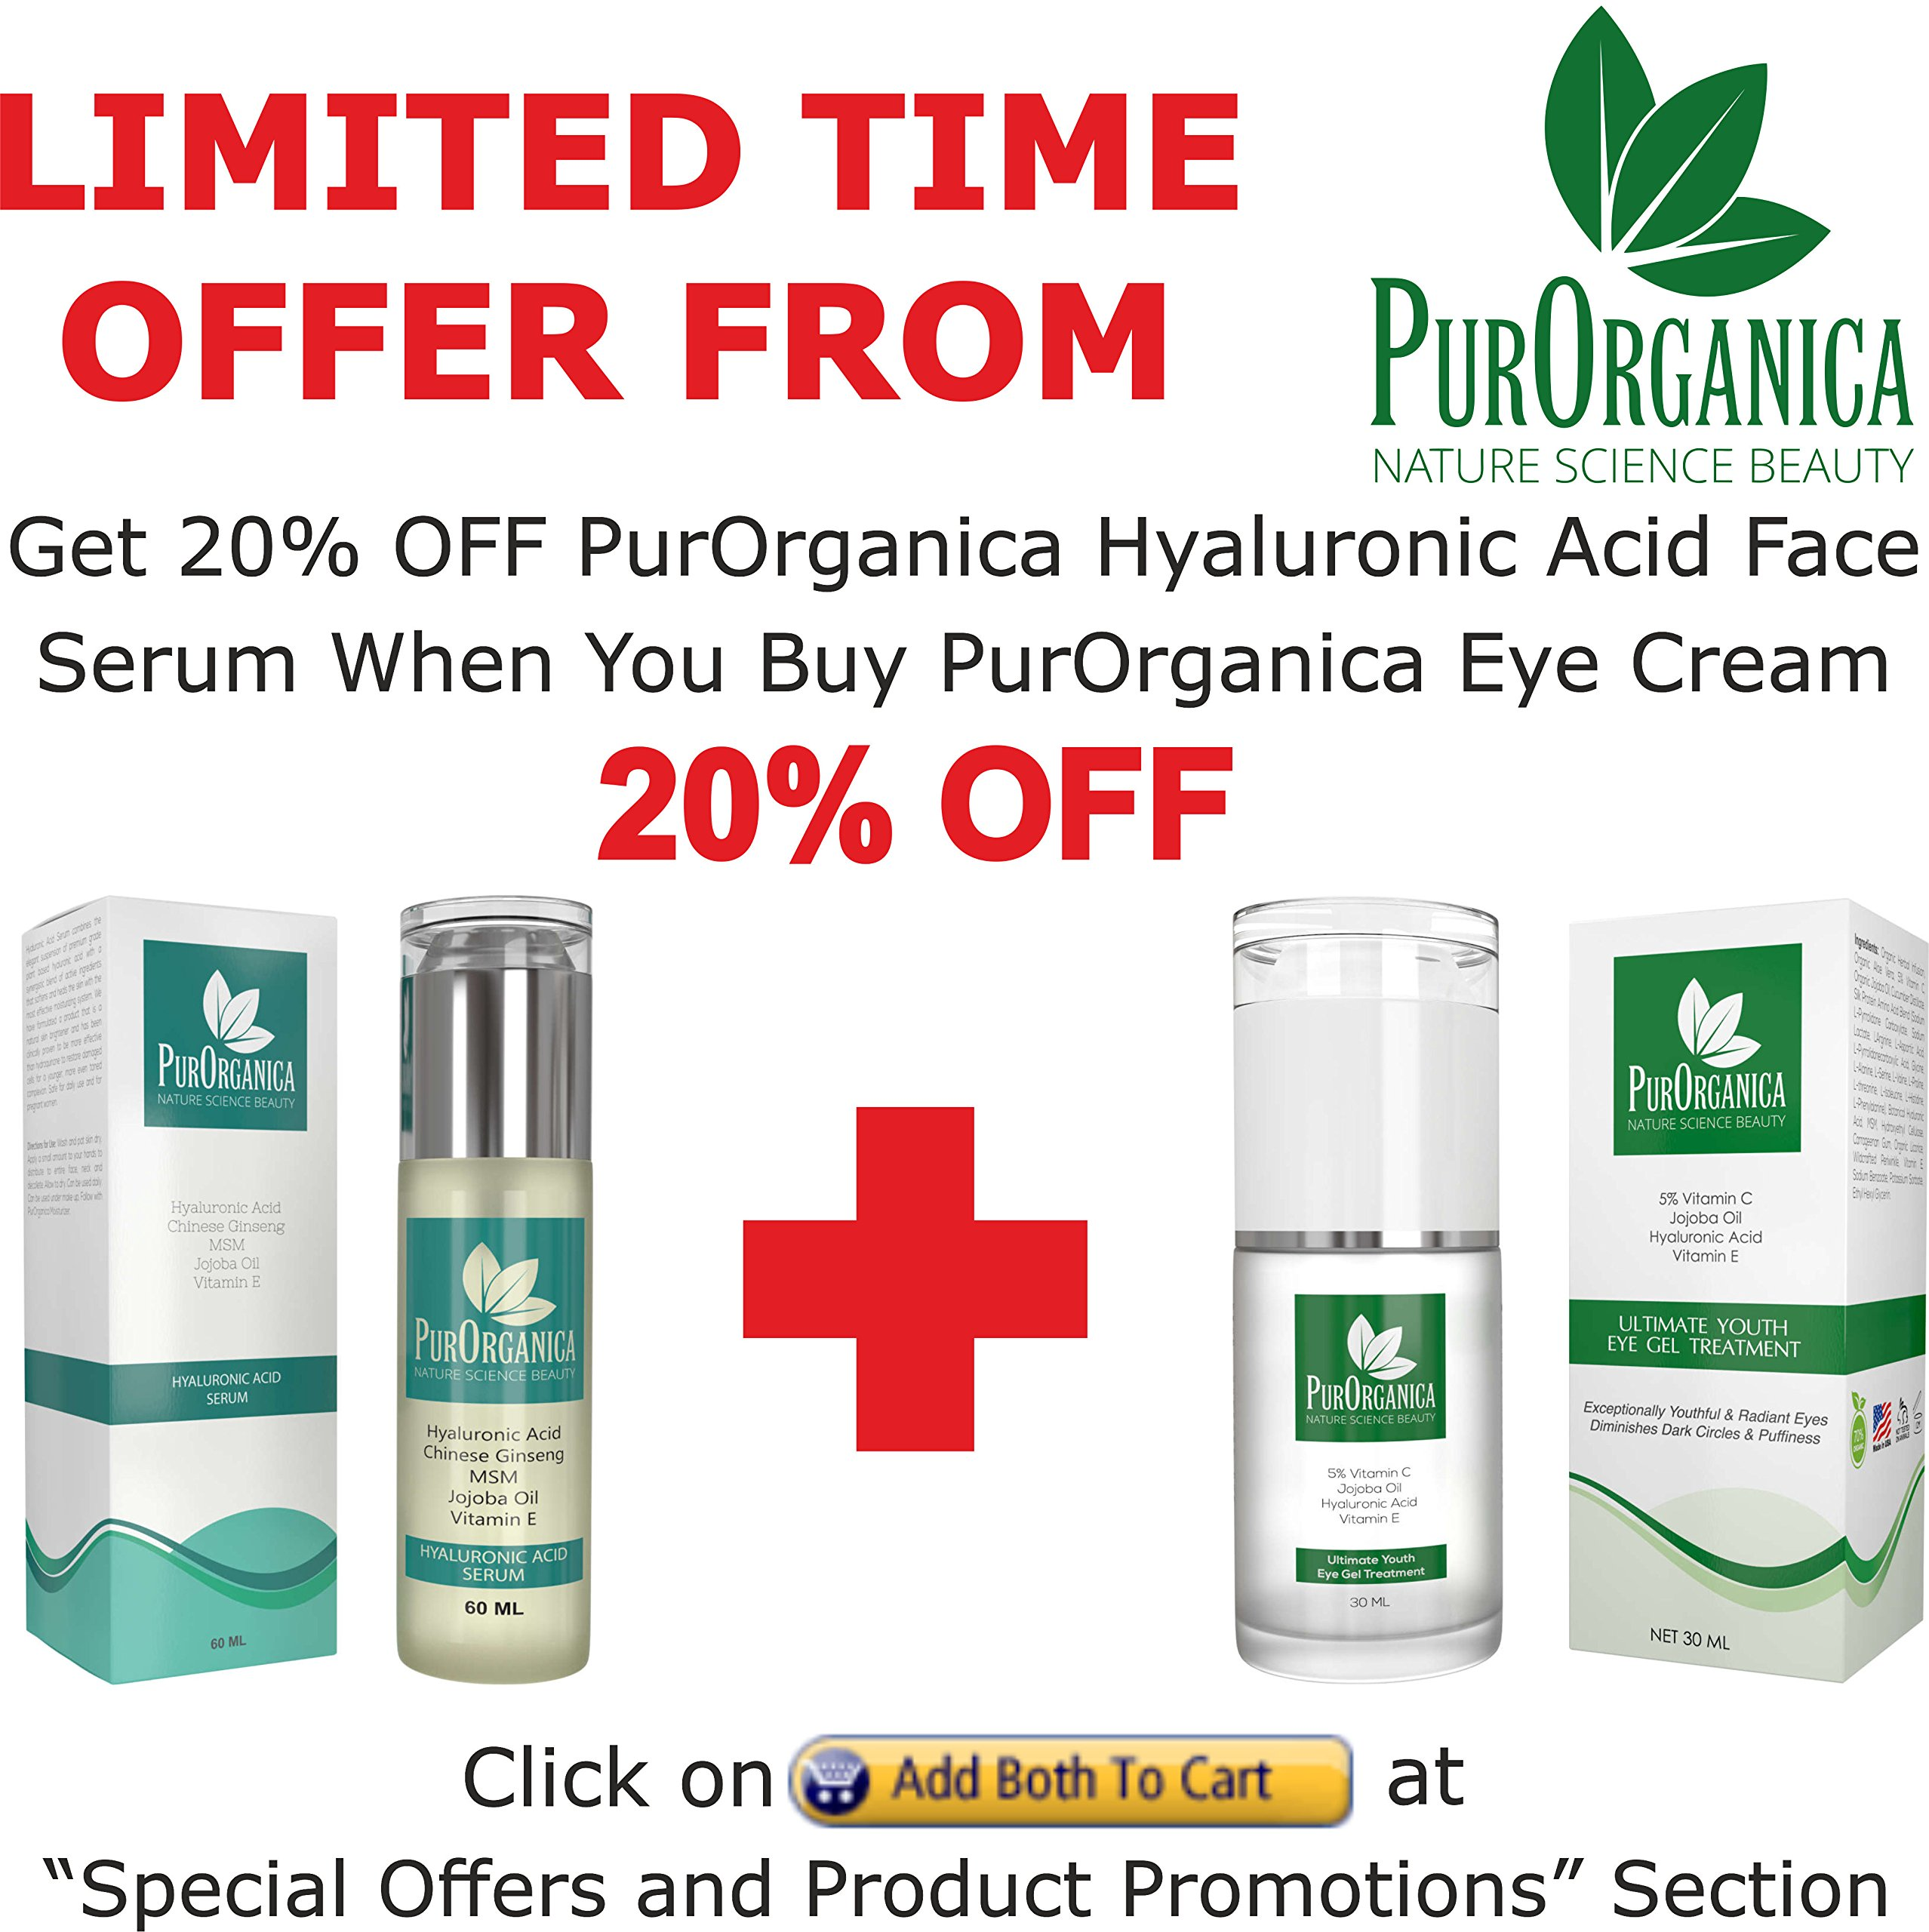 PurOrganica EYE CREAM for Dark Circles, Eye Bags, Puffiness, Wrinkles and Crow's Feet - DOUBLE SIZED 1 OZ - Organic Anti Ageing Cream with Vitamin C, Hyaluronic Acid, Jojoba Oil and Vitamin E